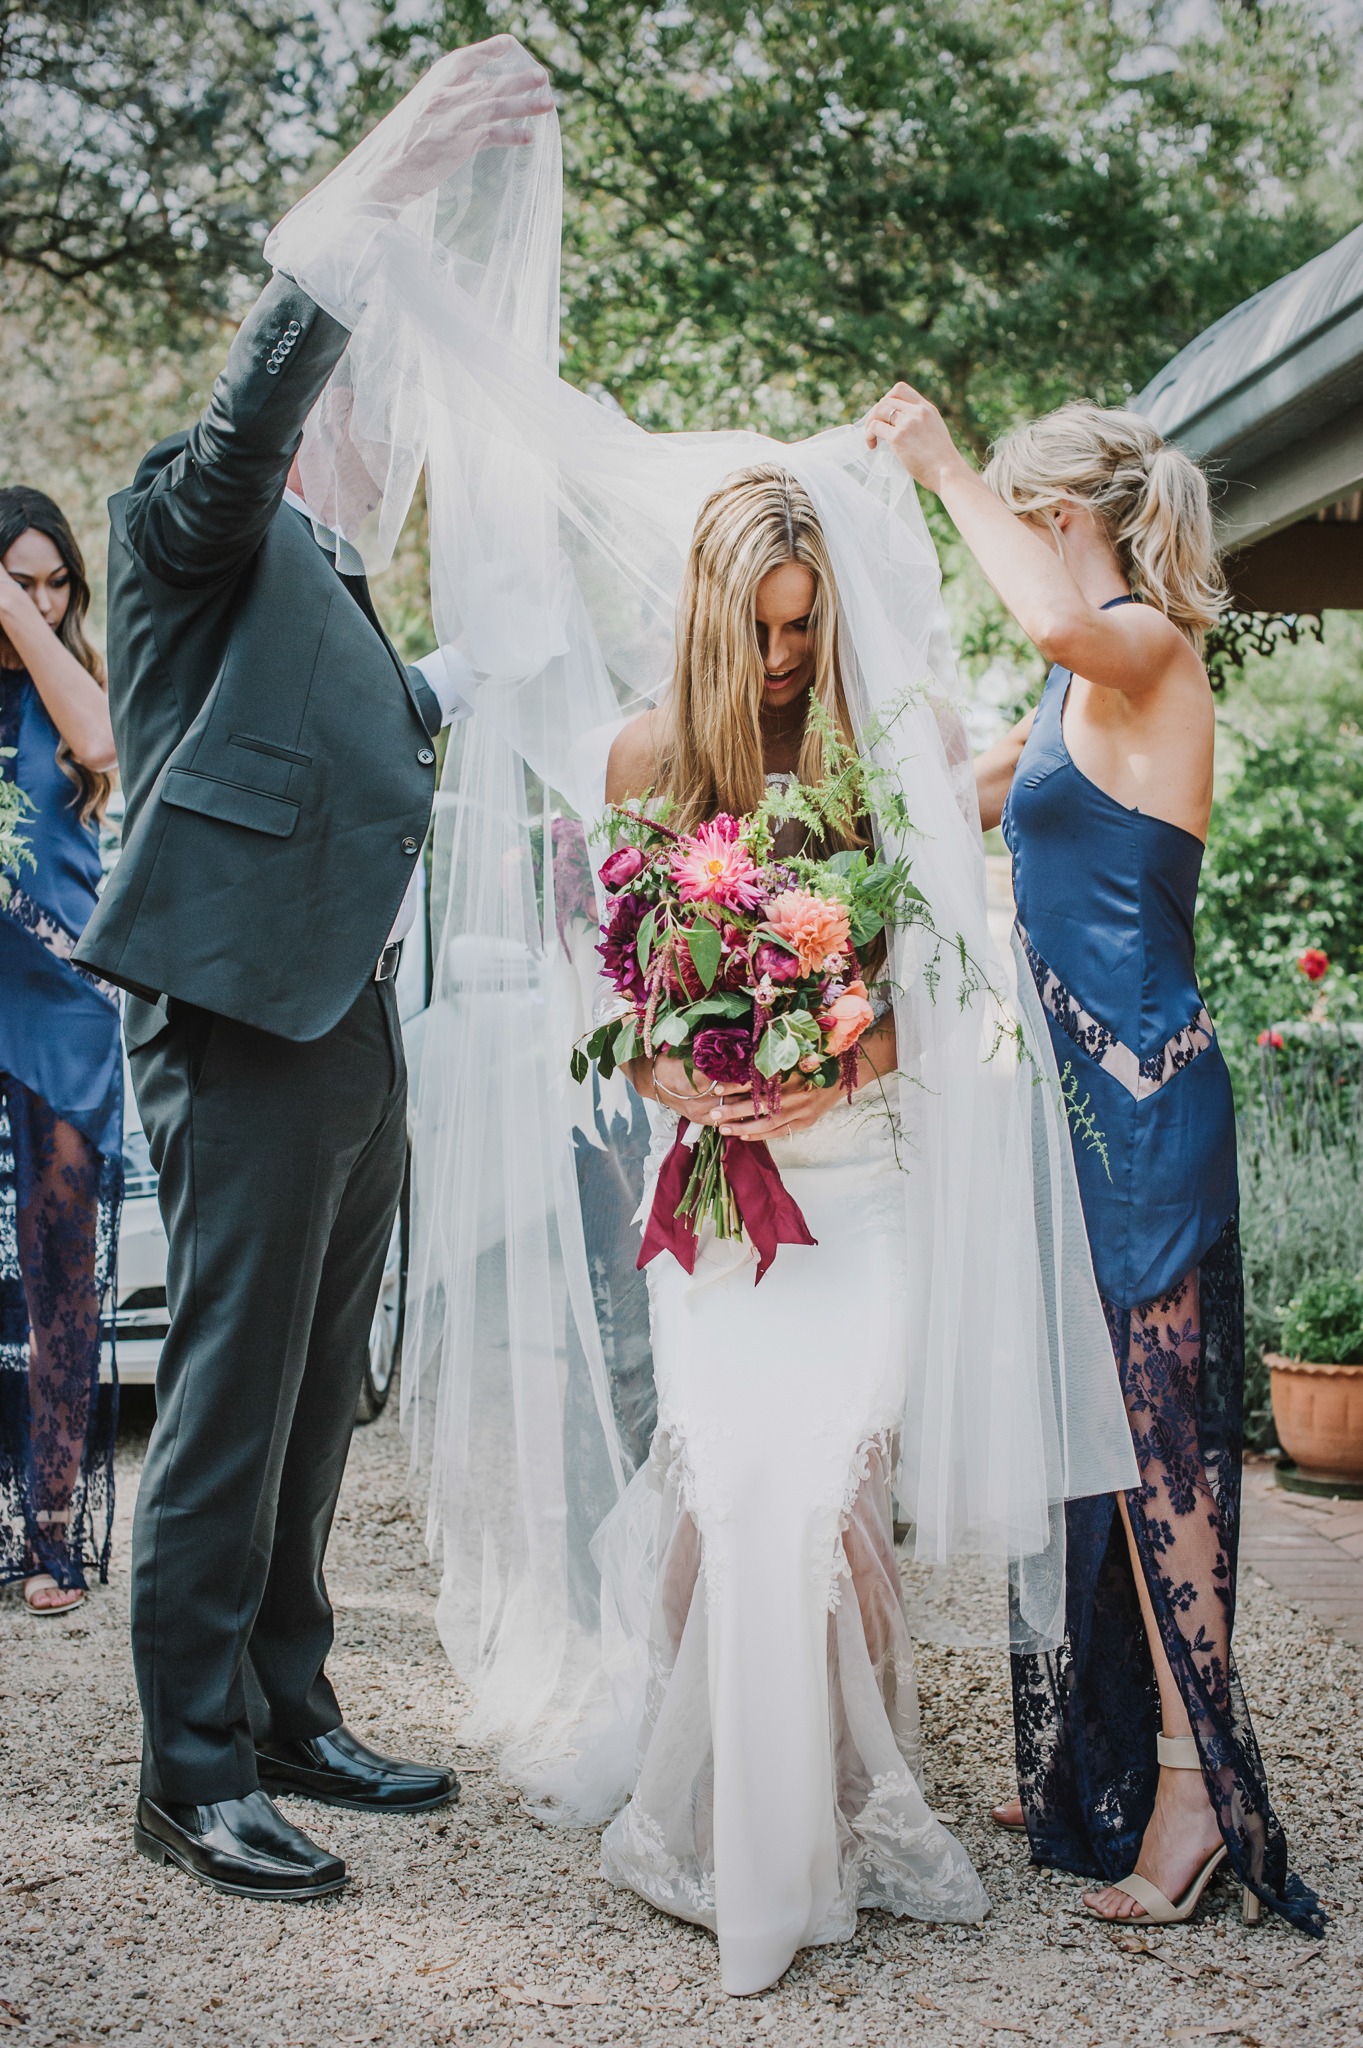 WEB Shae + Mitch Bush Festival Wedding She Takes Pictures He Makes Films Sooti Events and Styling-42.jpg